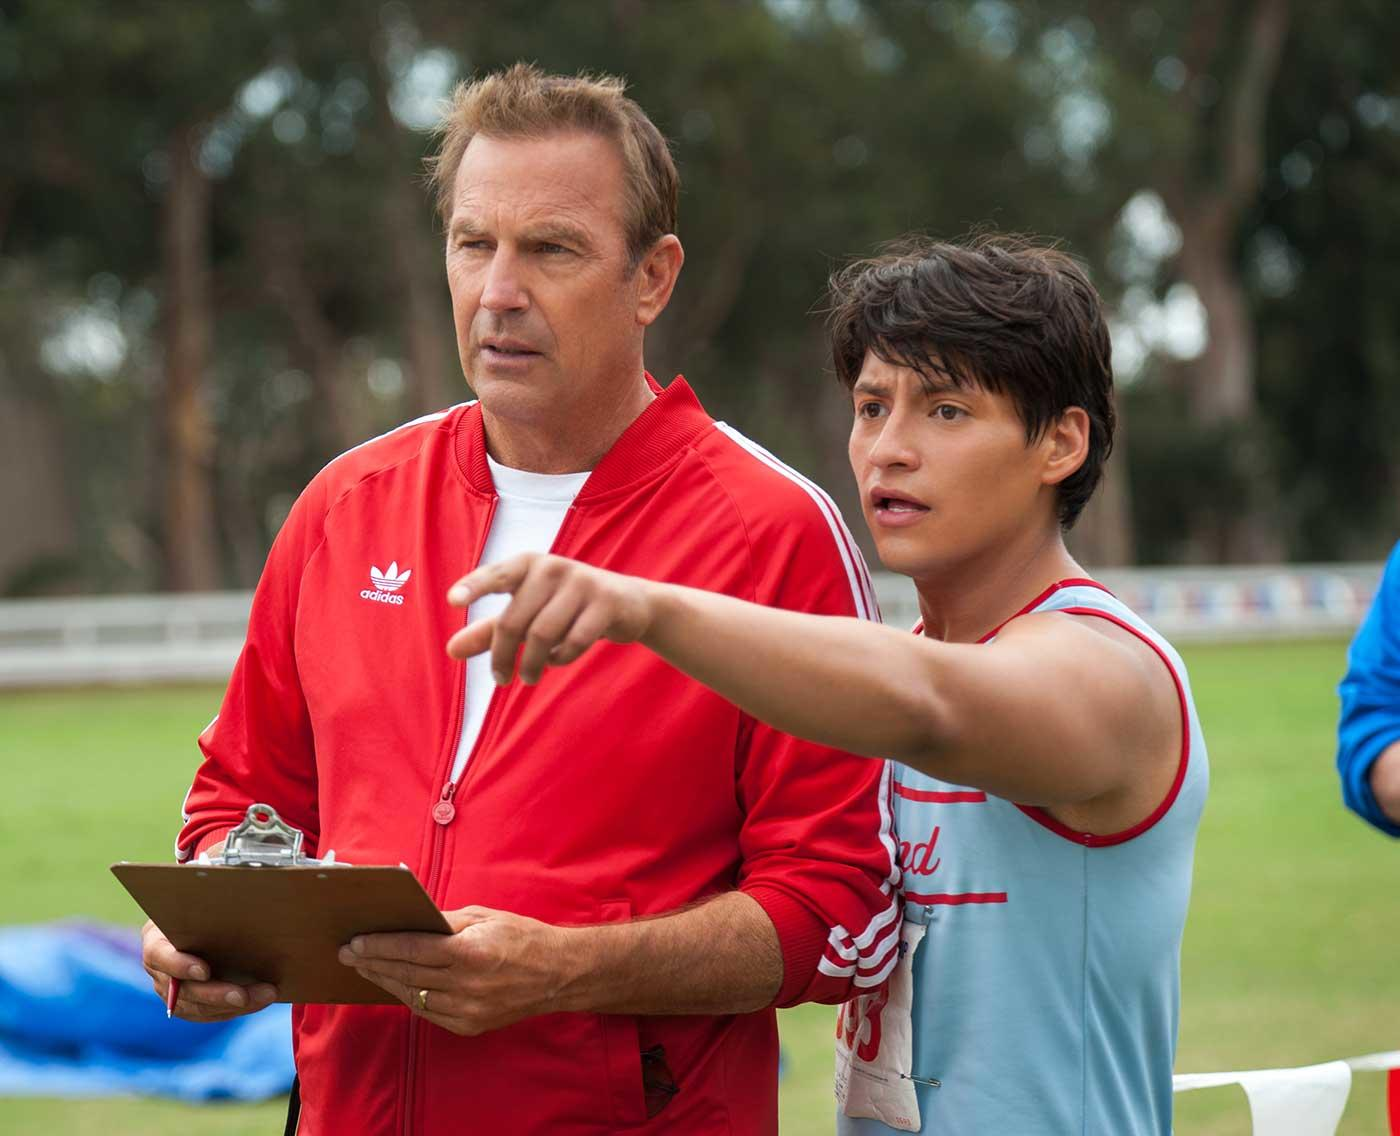 Kevin Costner in McFarland, USA